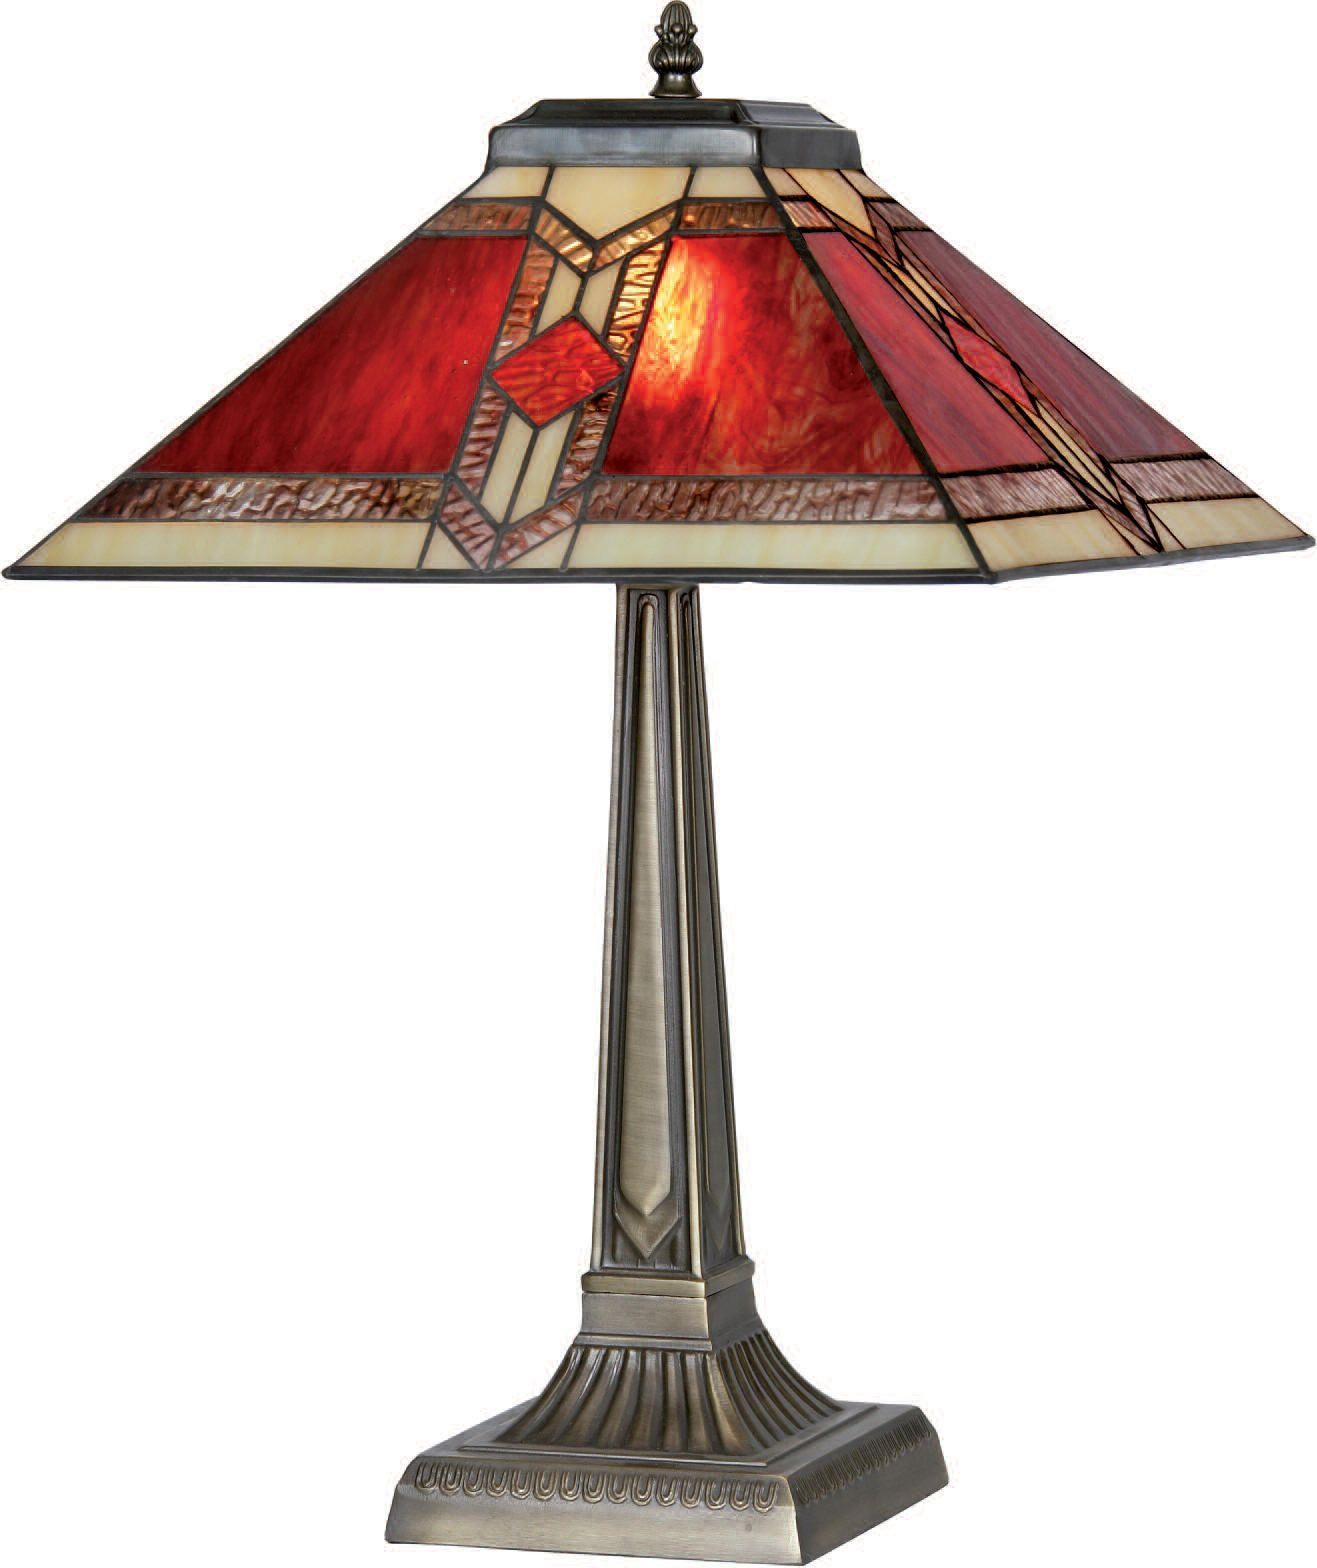 Glass Lamp Art Aztec Table Lamp Tiffany For The House Furnishings And